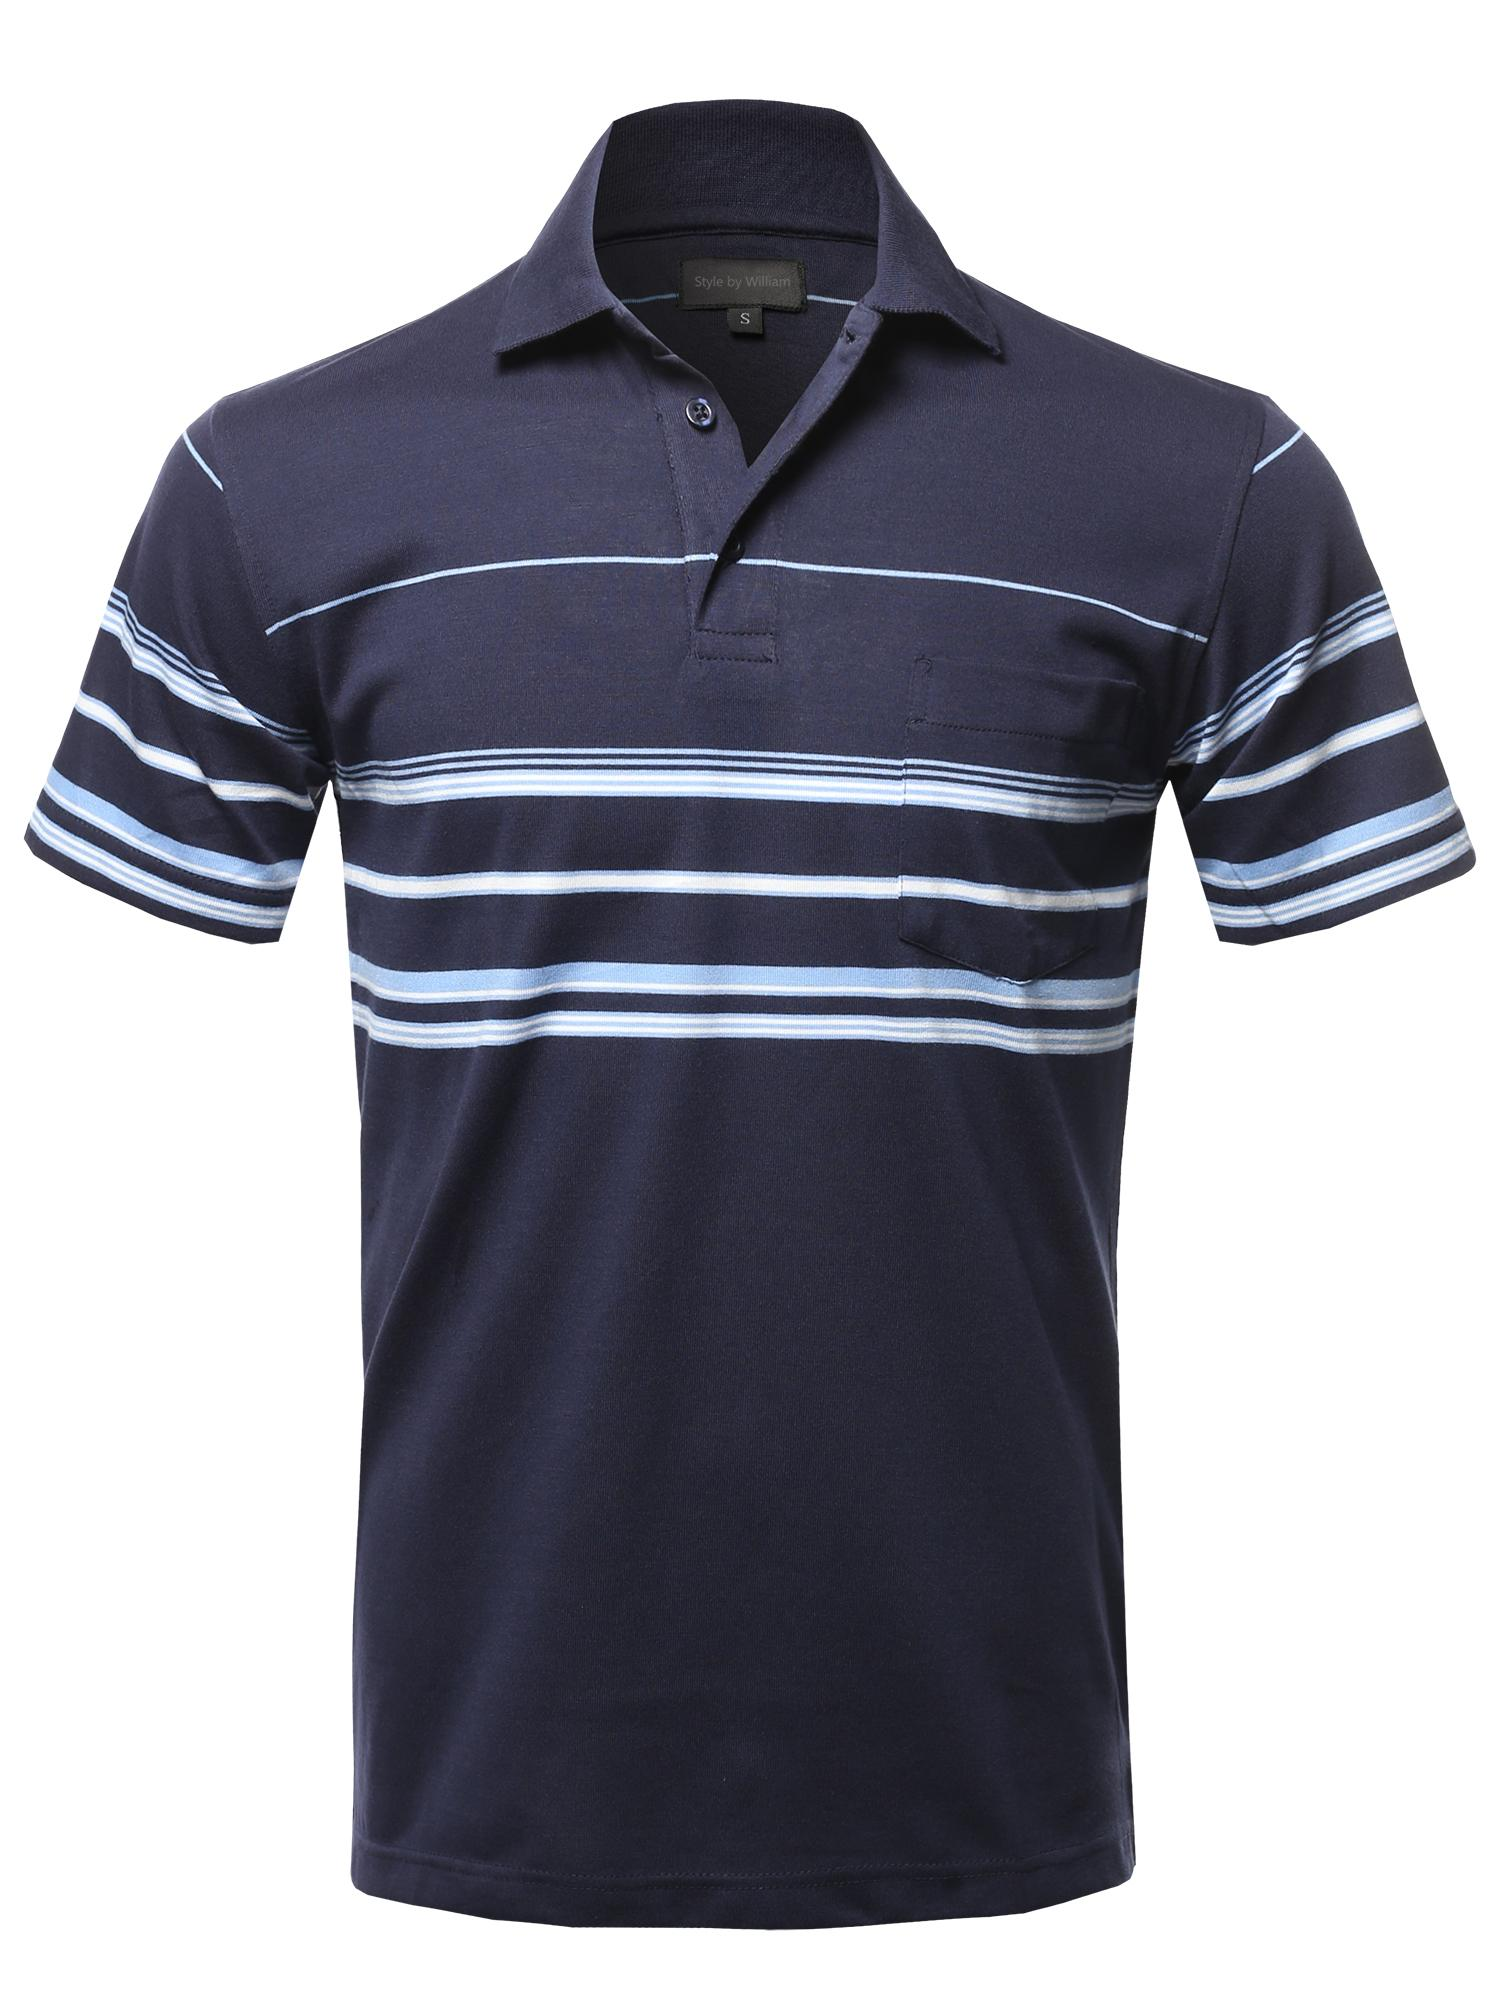 FashionOutfit Men's Casual Comfortable Basic Striped Chest Pocket Short Sleeve Polo T-Shirt